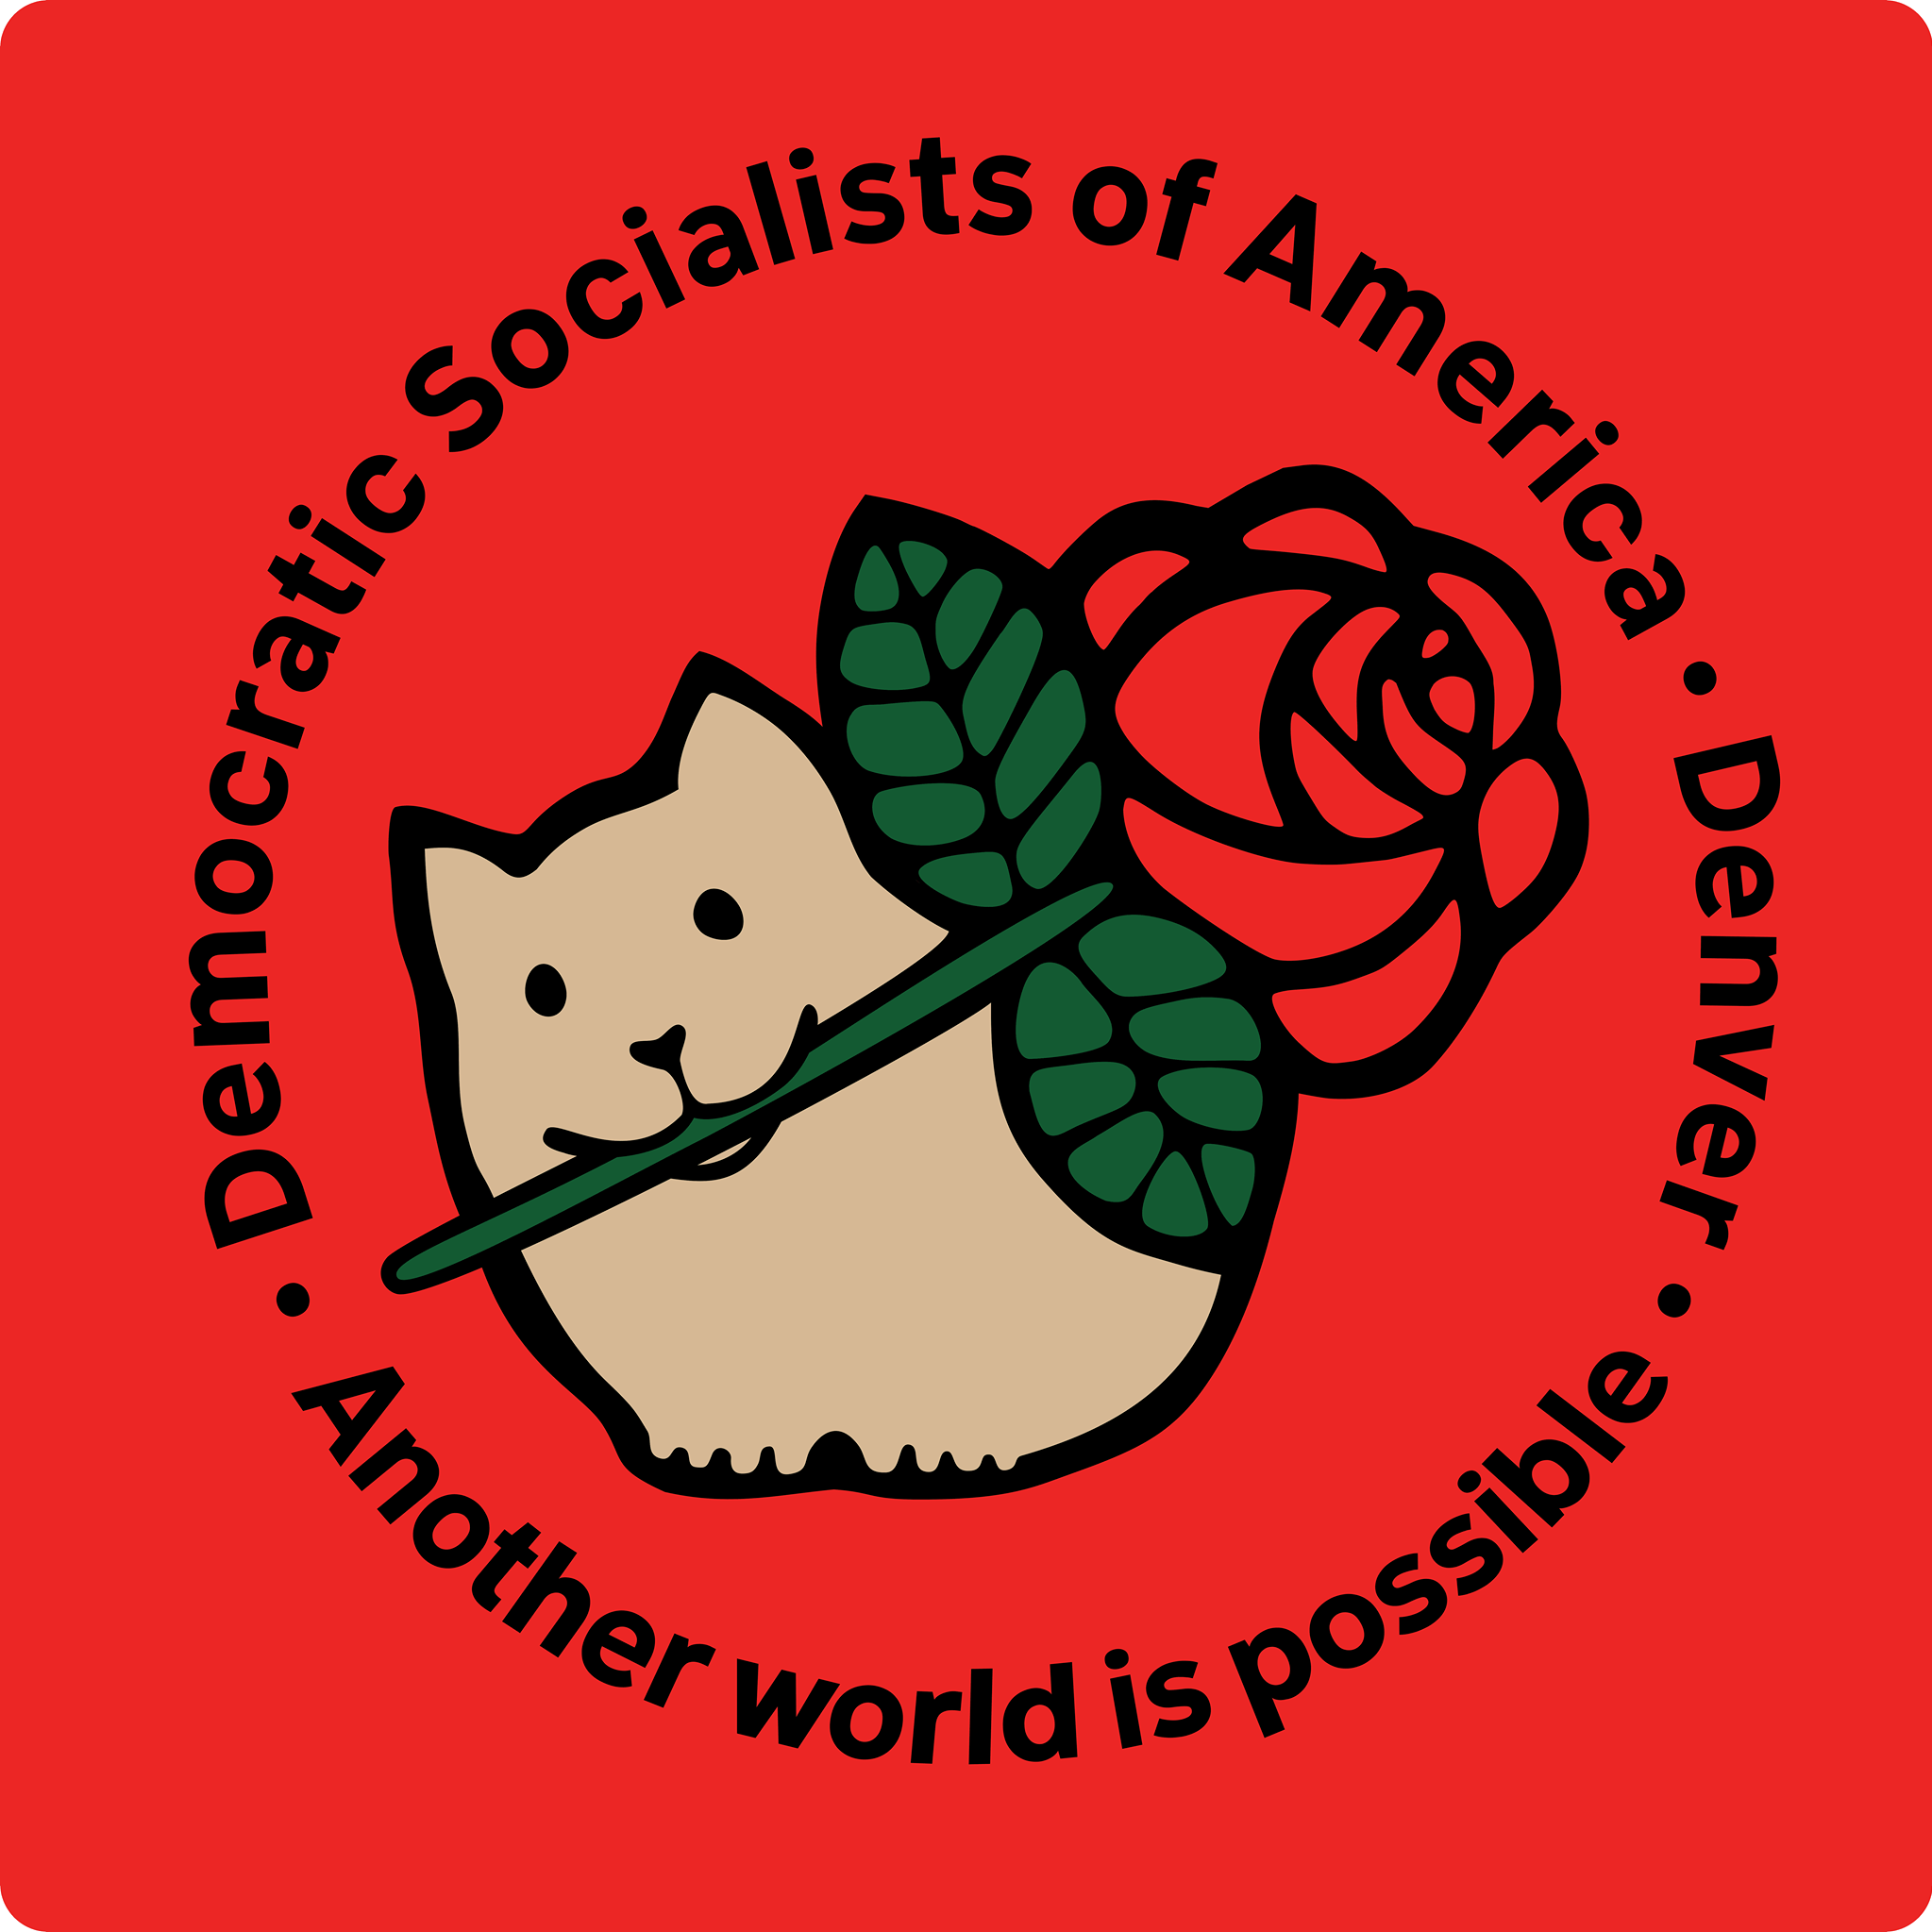 Denver Democratic Socialists of America  The Democratic Socialists of America believe that working people should run both the economy and society democratically to meet human needs, not to make profits for a few.